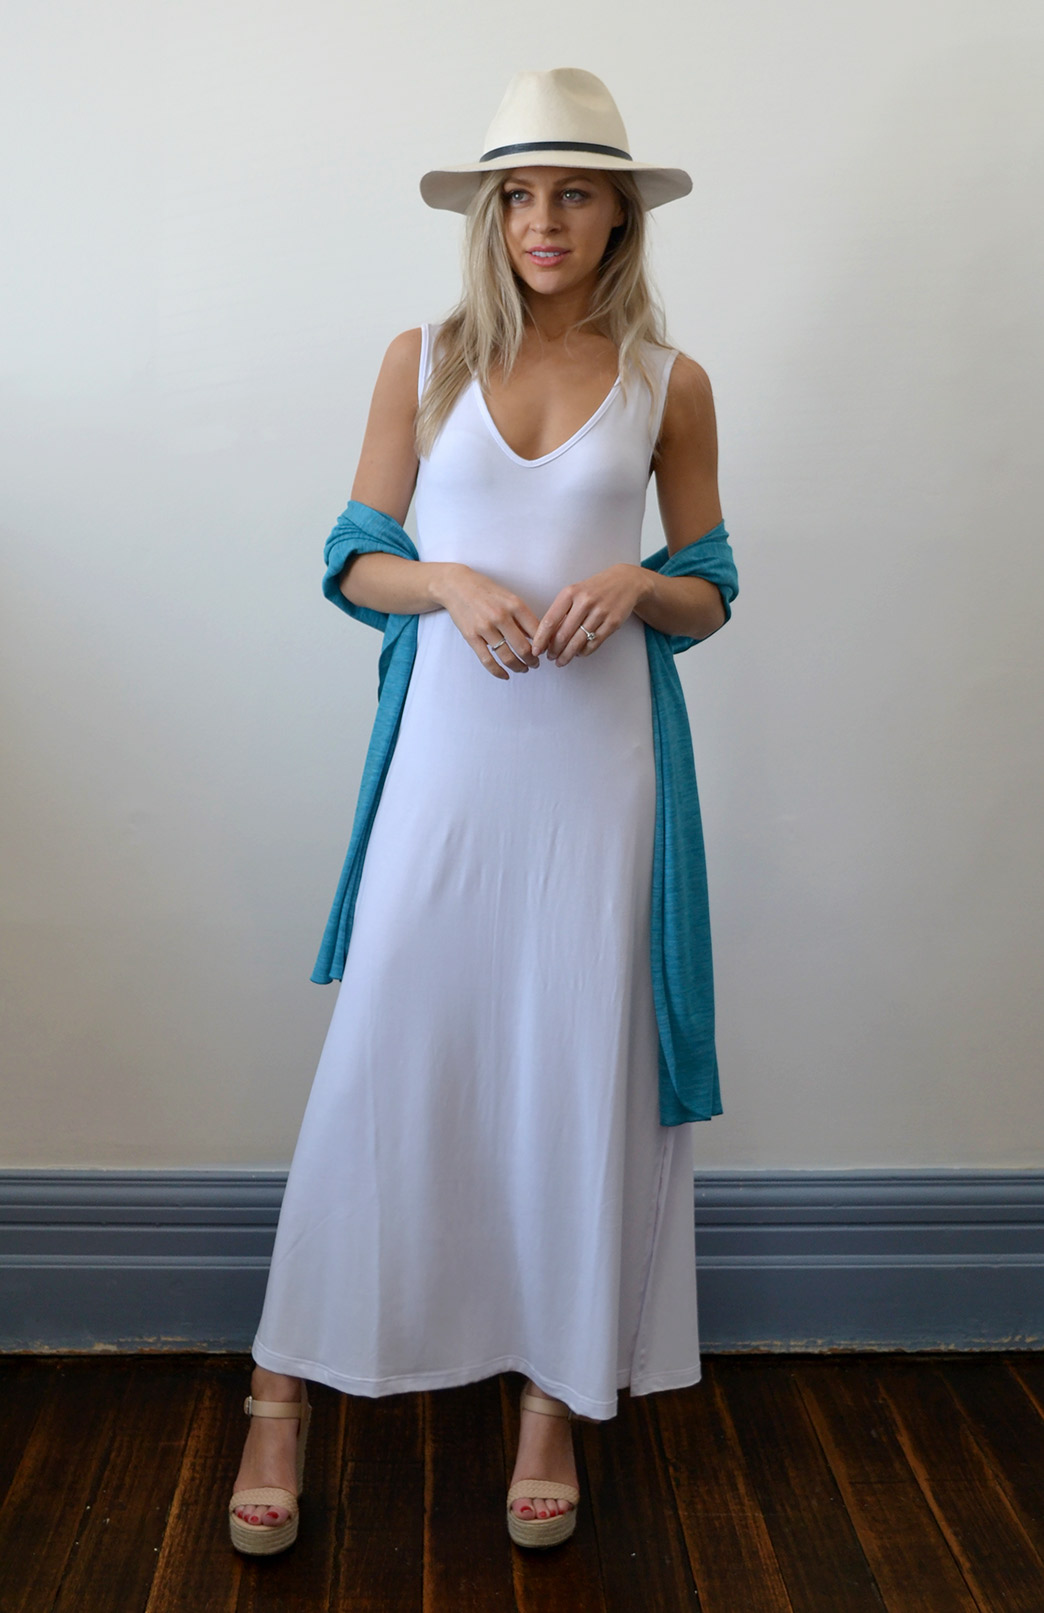 V-Neck Maxi Dress - Modal - Women's White Modal V-Neck Sleeveless Maxi Dress with Side Split - Smitten Merino Tasmania Australia